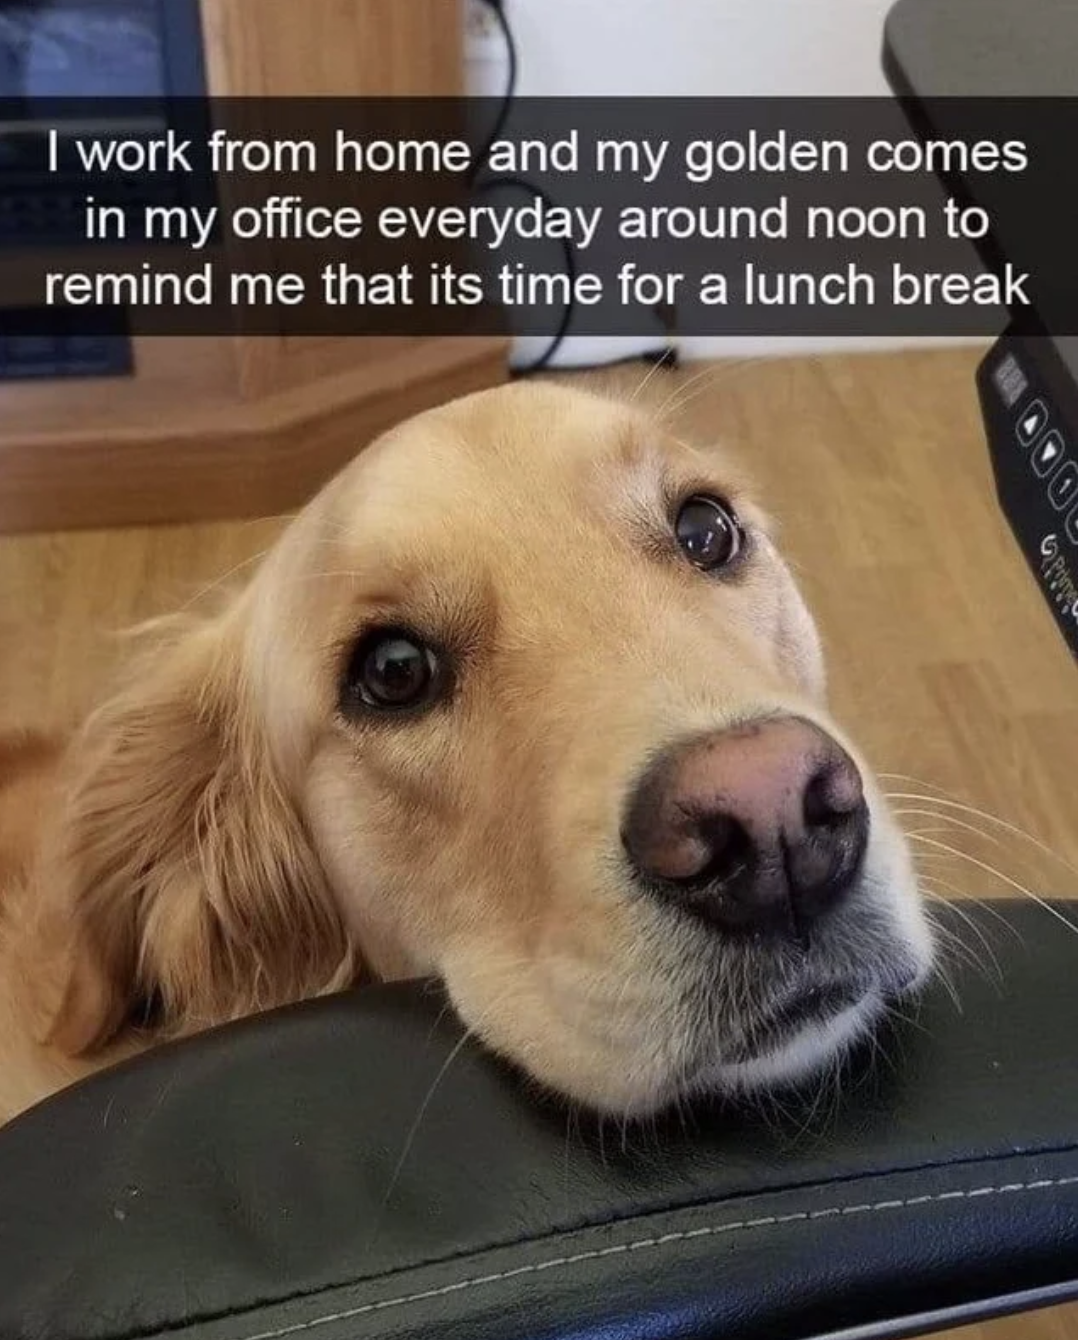 Here's A Bunch Of Examples Of Golden Retrievers Just Being Really, Really Adorable